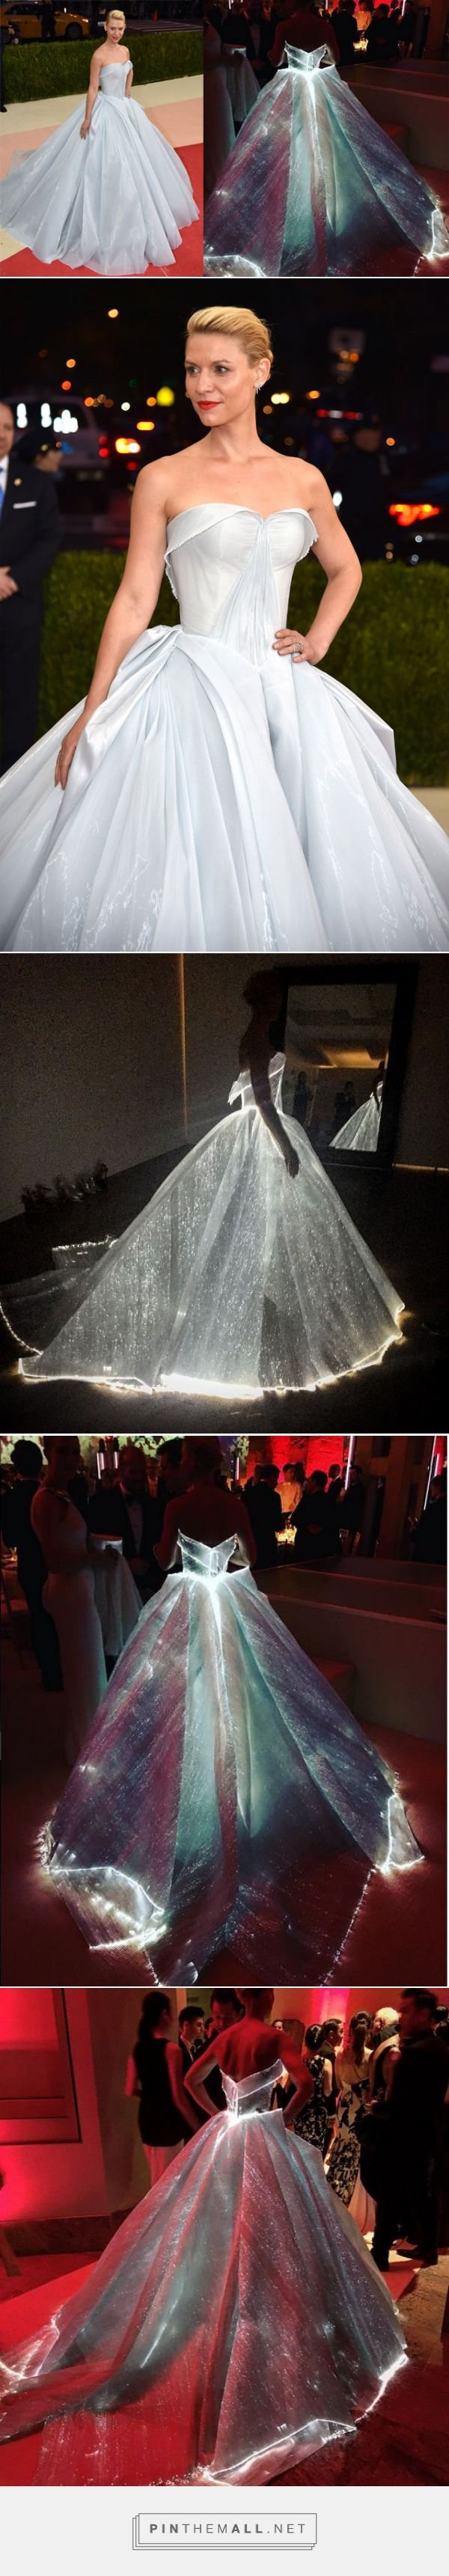 Claire danes the yrold donned a custom cinderellastyle zac